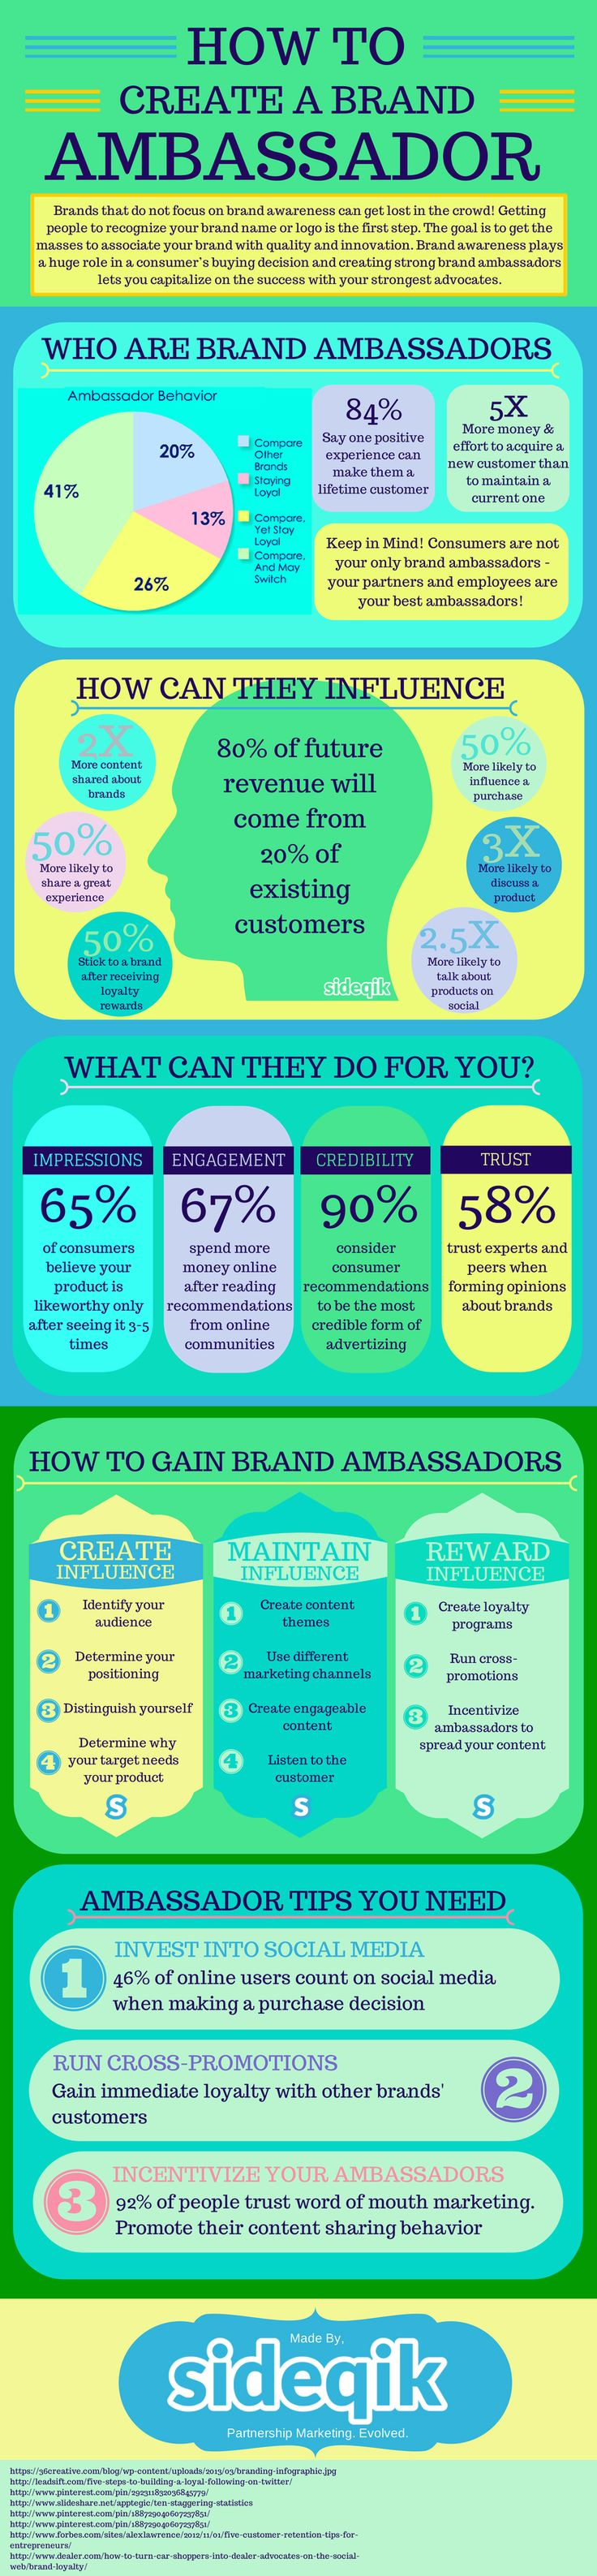 "Here's a great #infographic on ""How To Create A Brand Ambassador"" in #Asheville, #Hendersonville, or anywhere! Keep your eye on the ""raving fan"" who will sing your praises!"